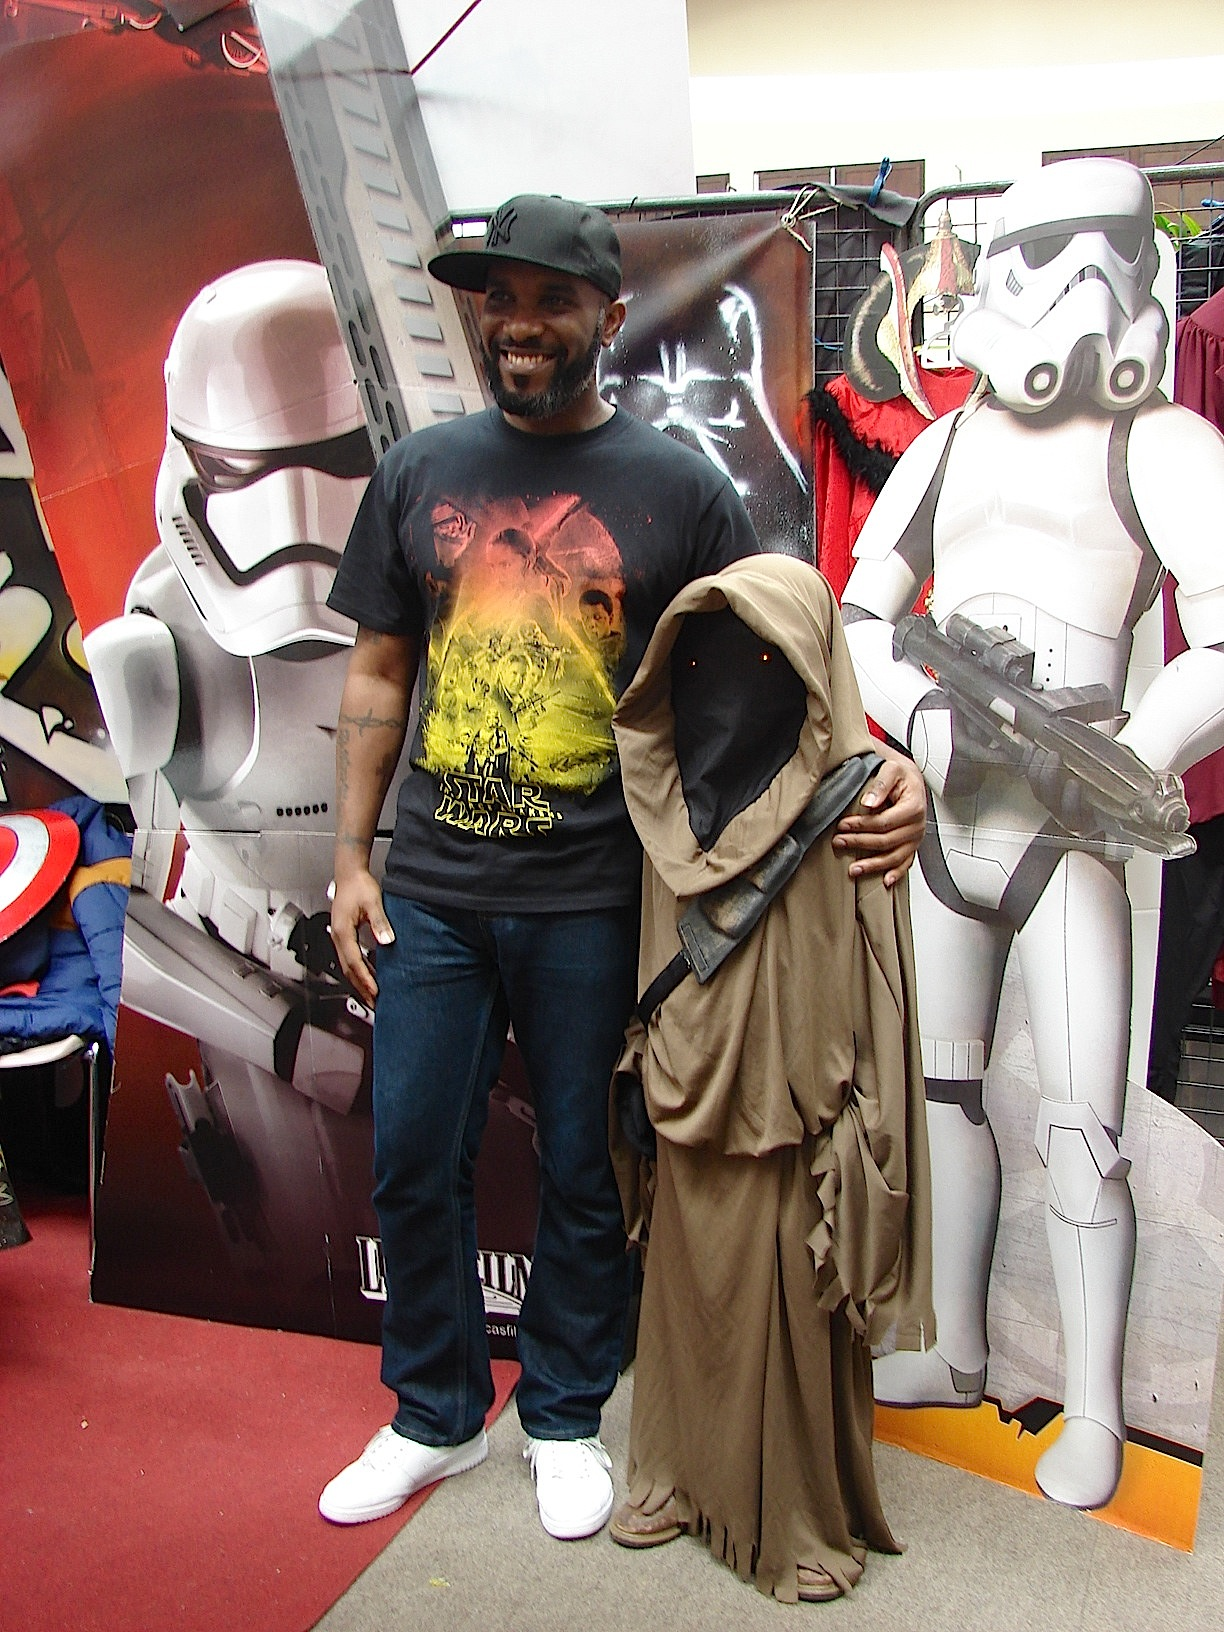 Stormtrooper Actor Phoenix James at ASFA Star Wars Convention in Amélie les Bains in South of France - Photo by Virginie Maurille 47